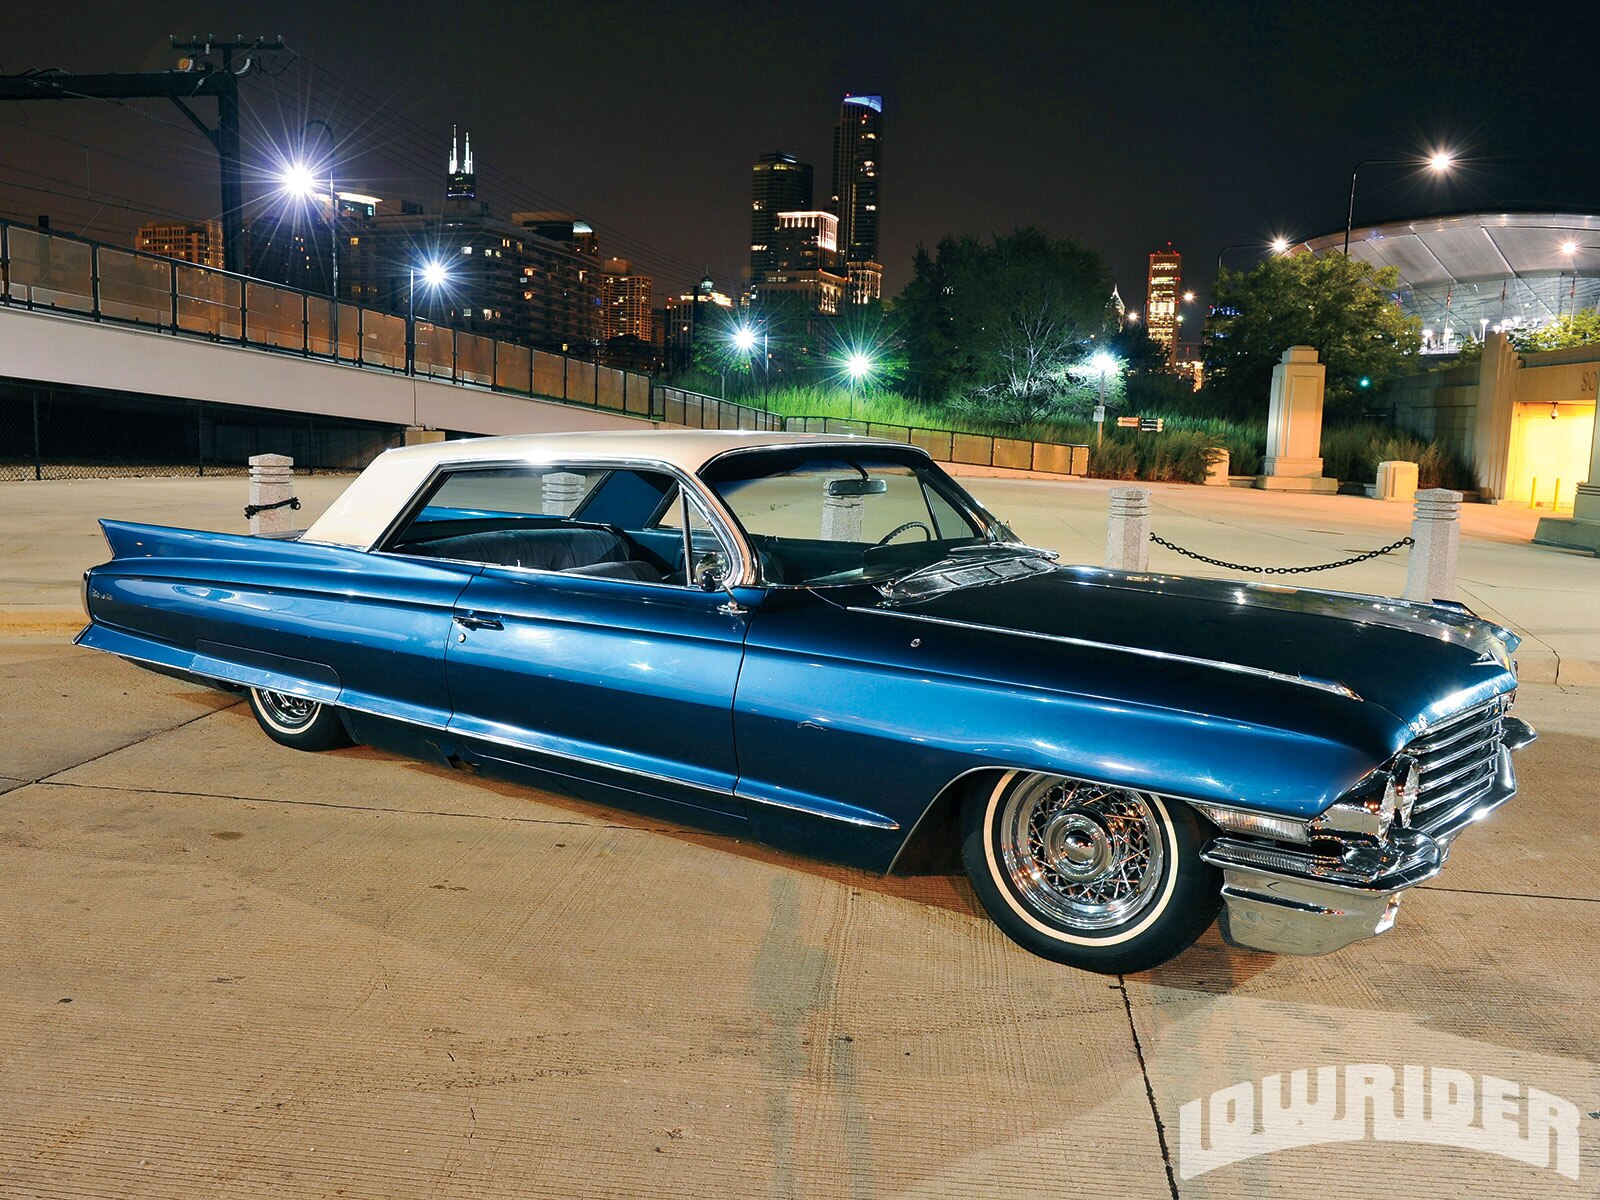 1305-lowrider-street-cred-in-the-midwest-chicago-cadillacs-21